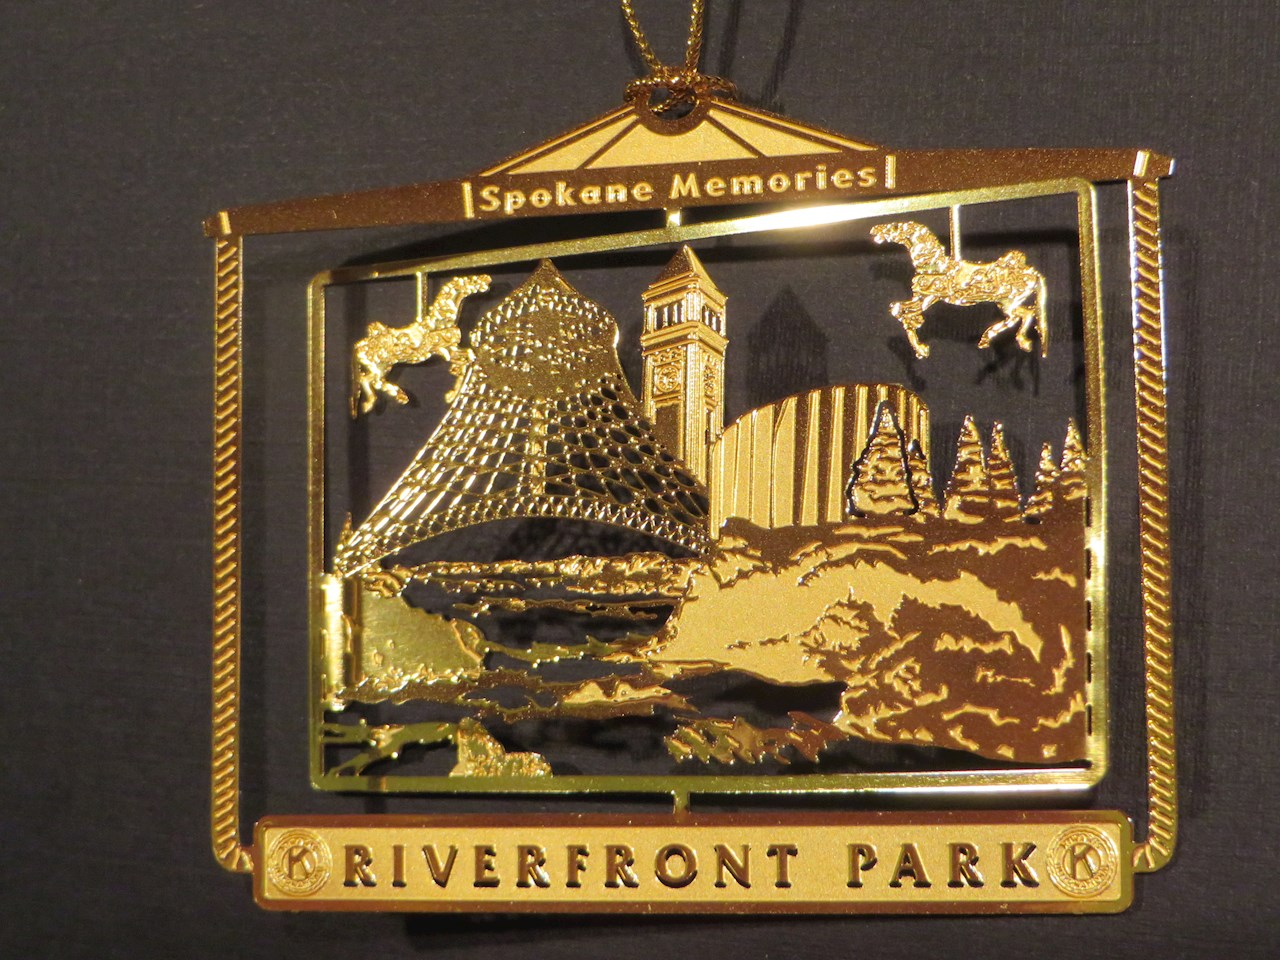 Spokane Memories - Riverfront Park